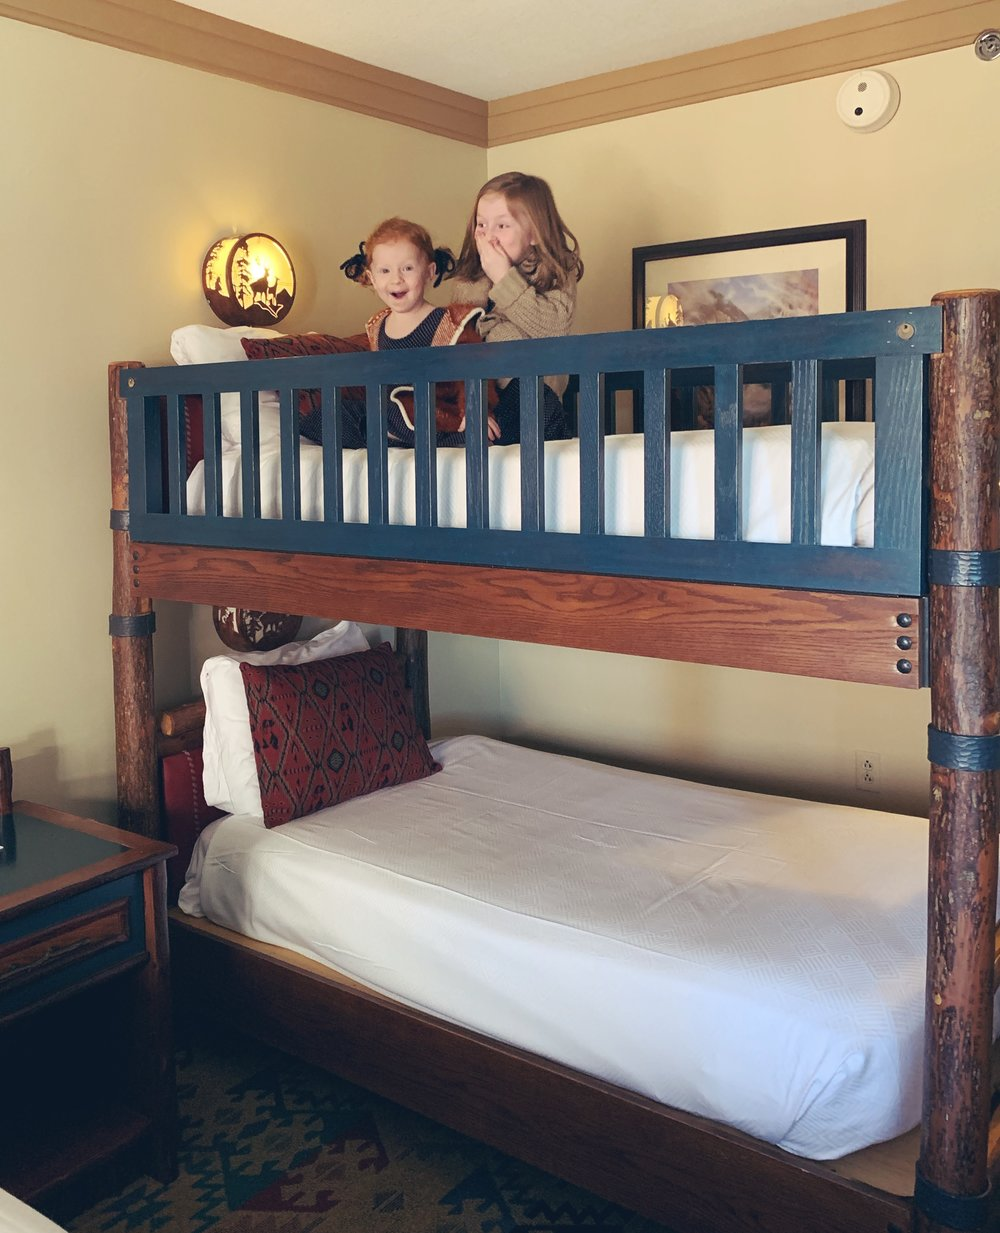 Courtney's girls with their upgraded bunkbed at Disney's Wilderness Lodge - they were so happy!